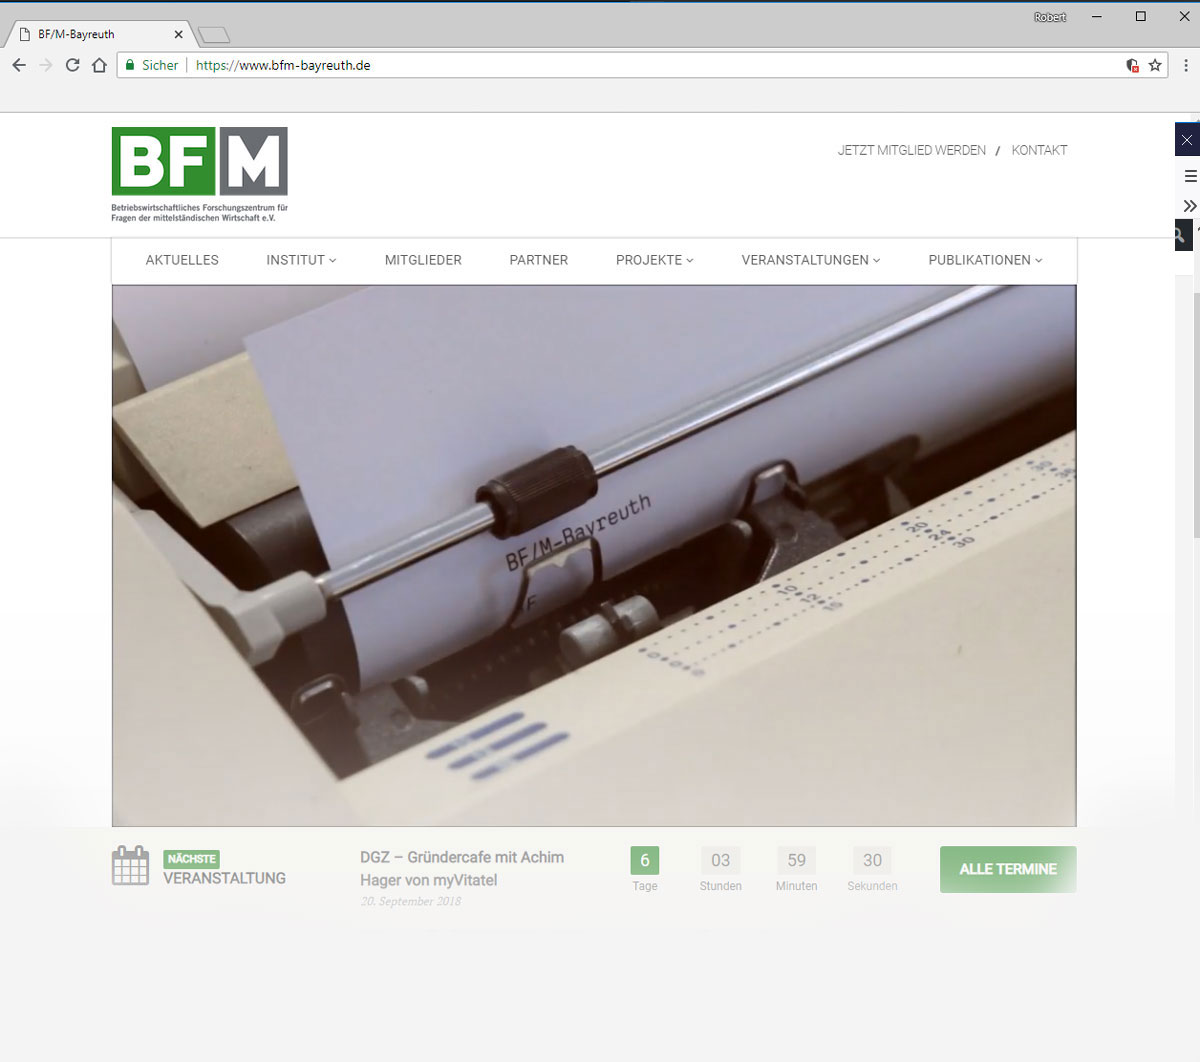 Braun Multimedia Videoproduktion - Headervideo für das BF/M